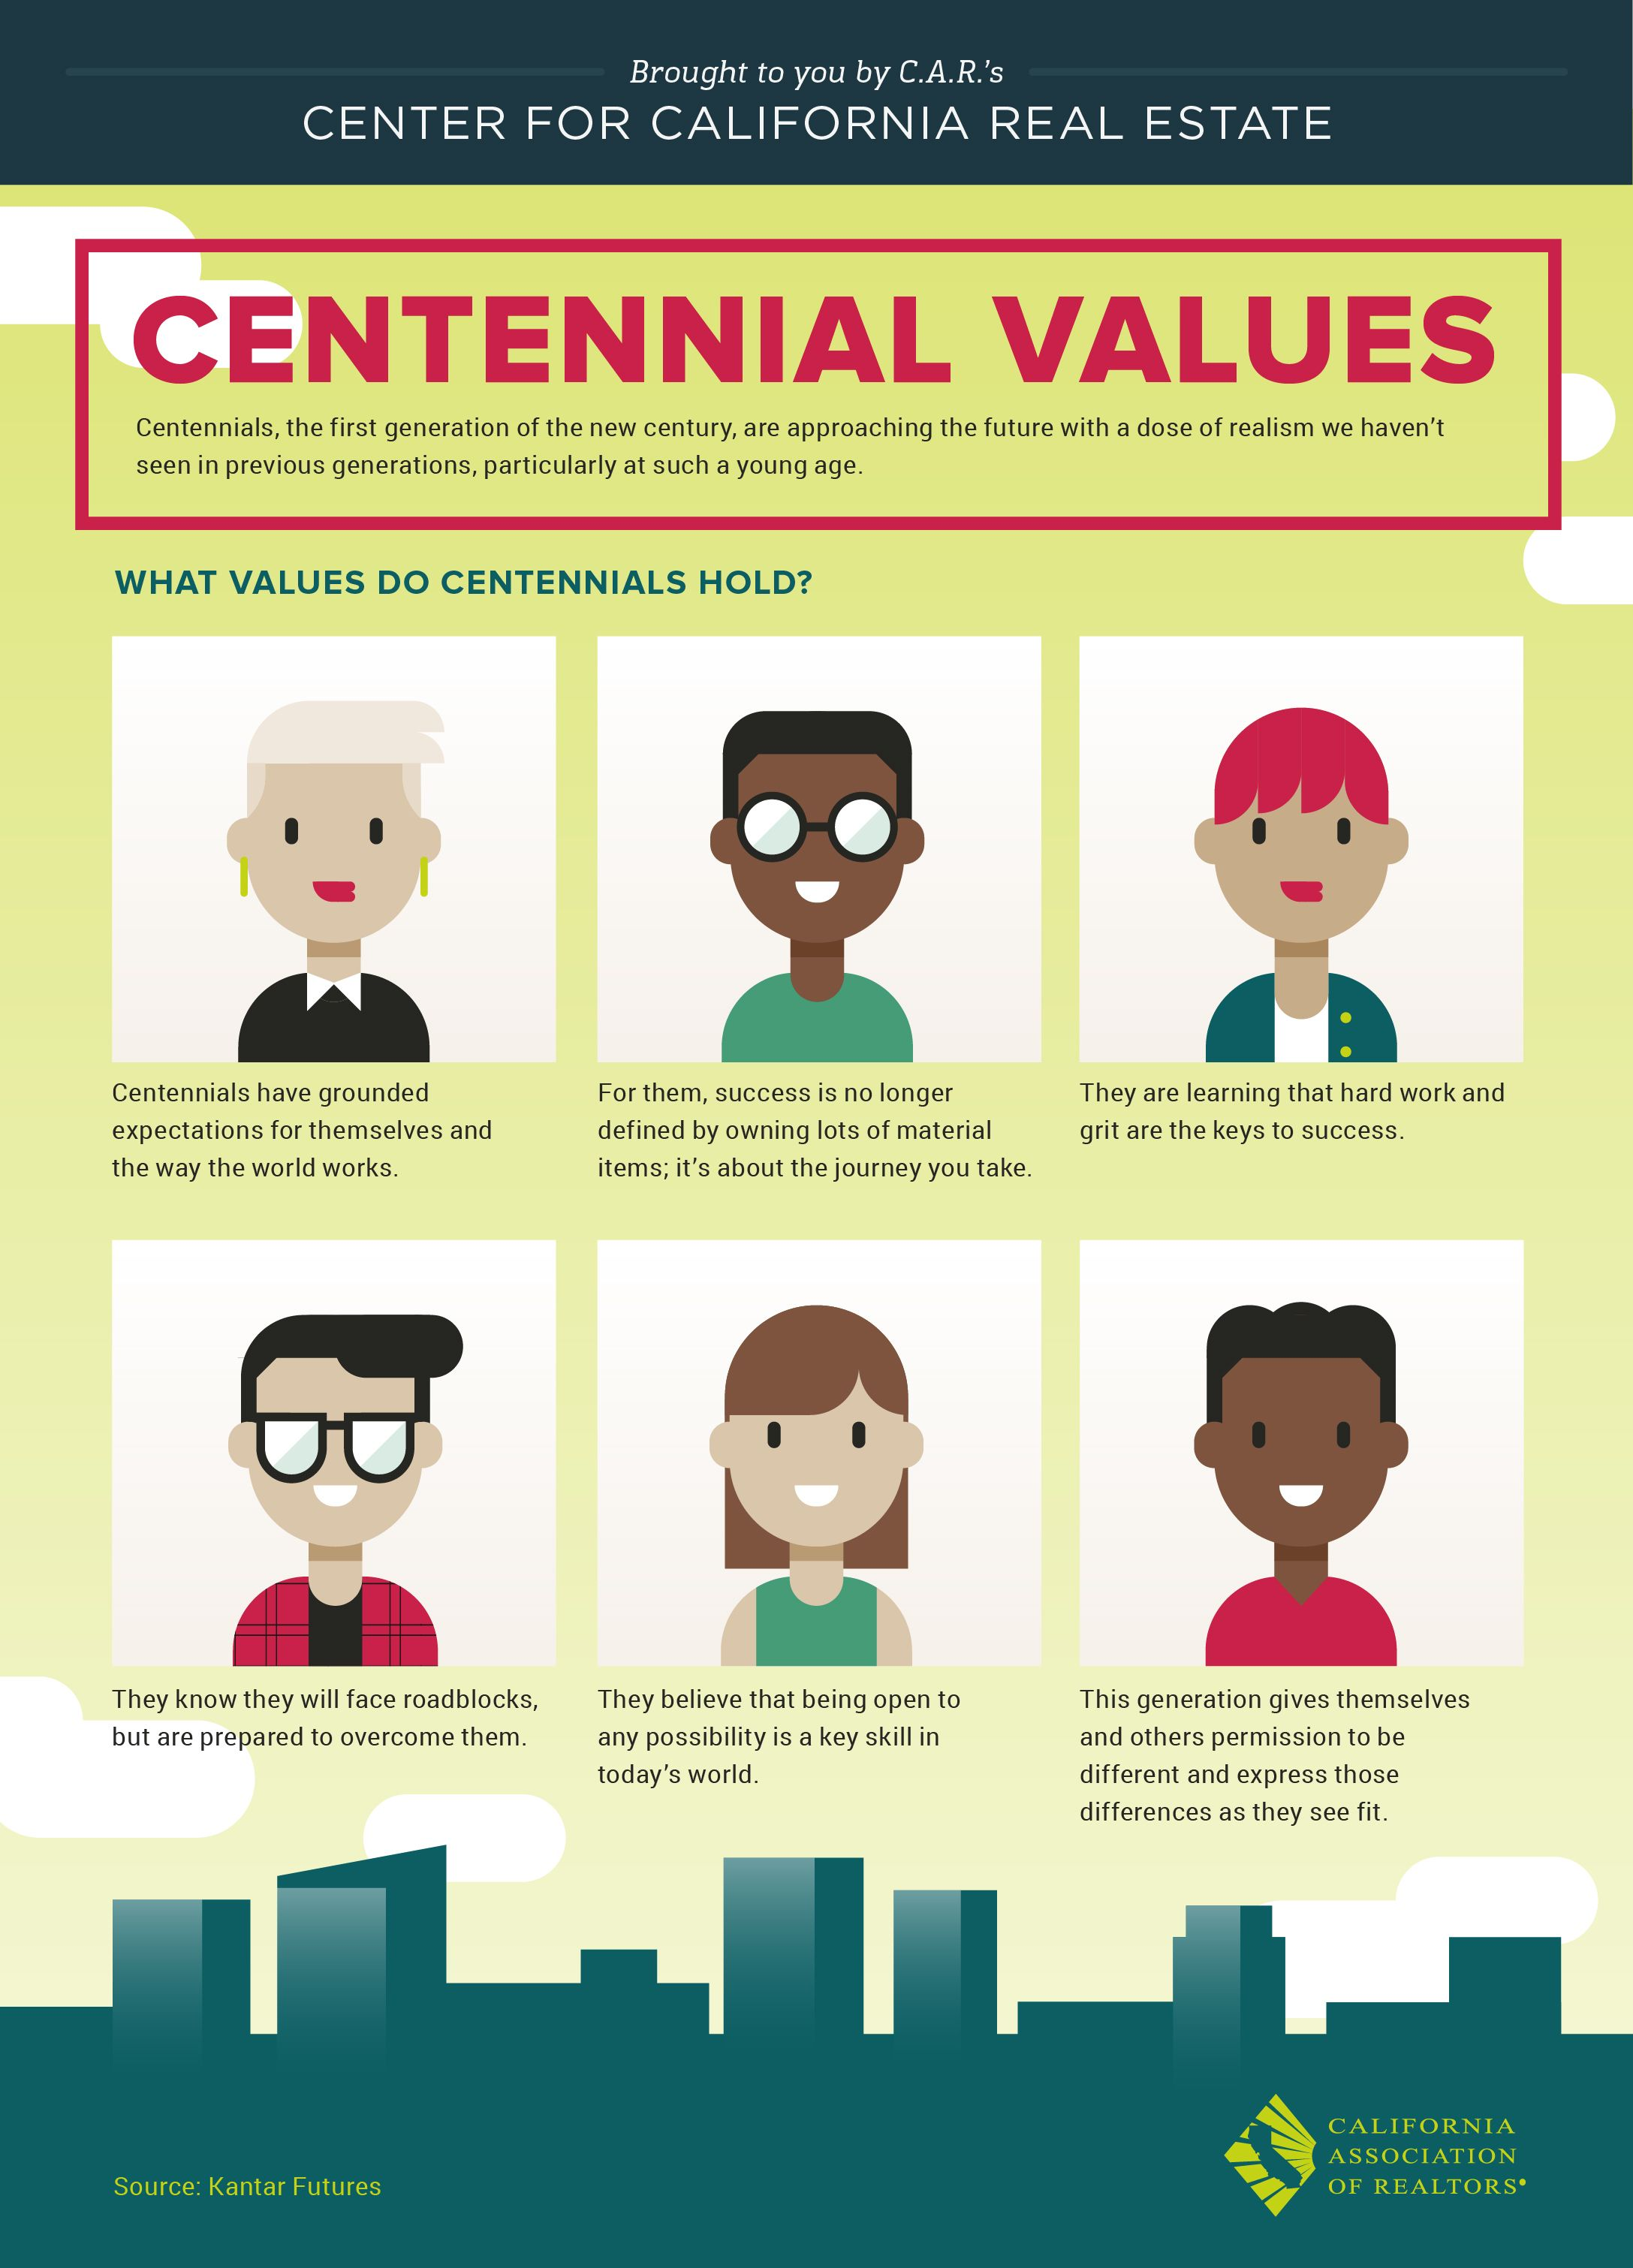 What ages are considered Centennials? What are their